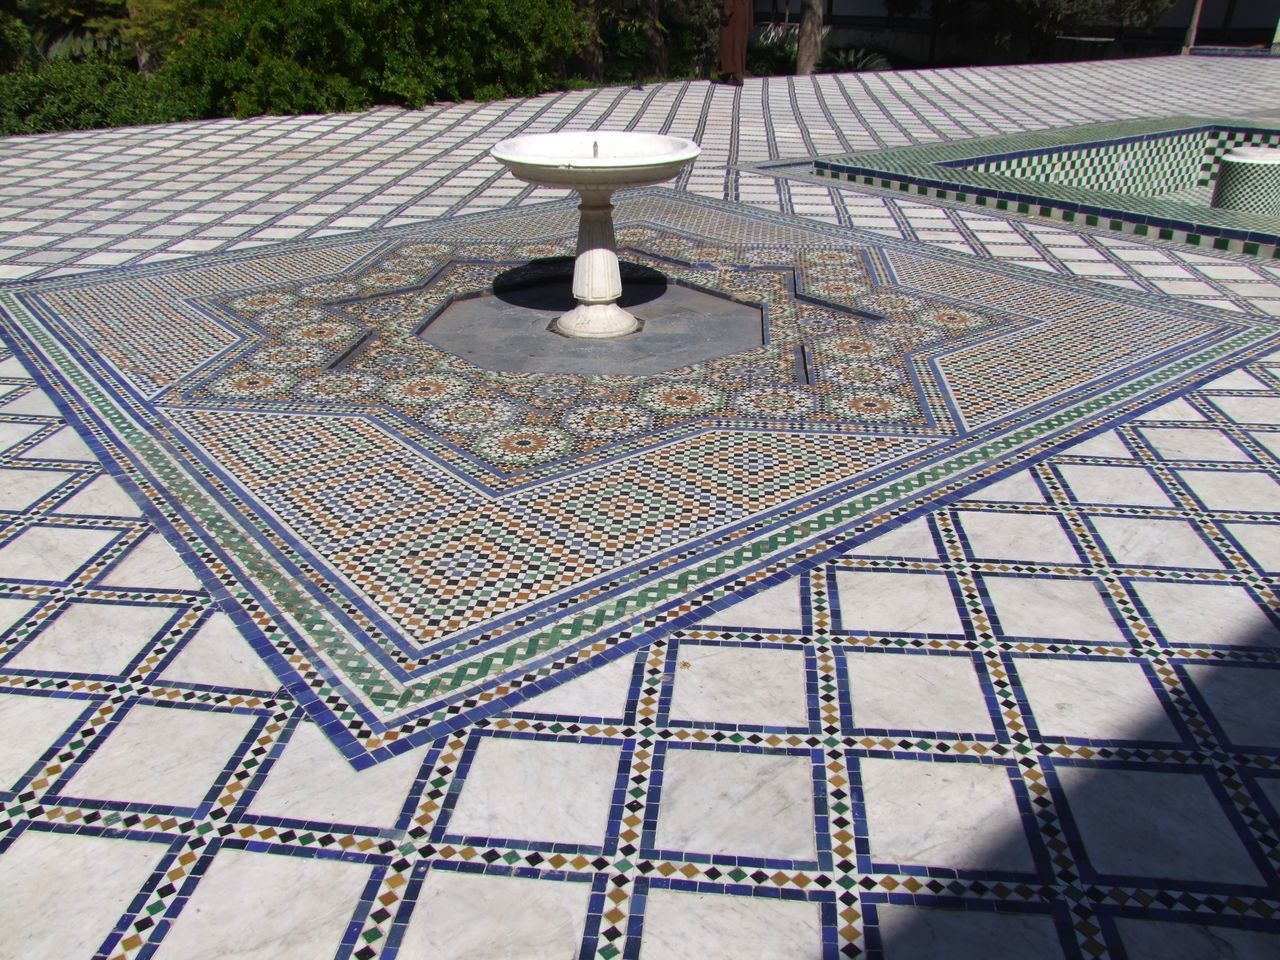 pattern, day, mosaic, table, outdoors, no people, water